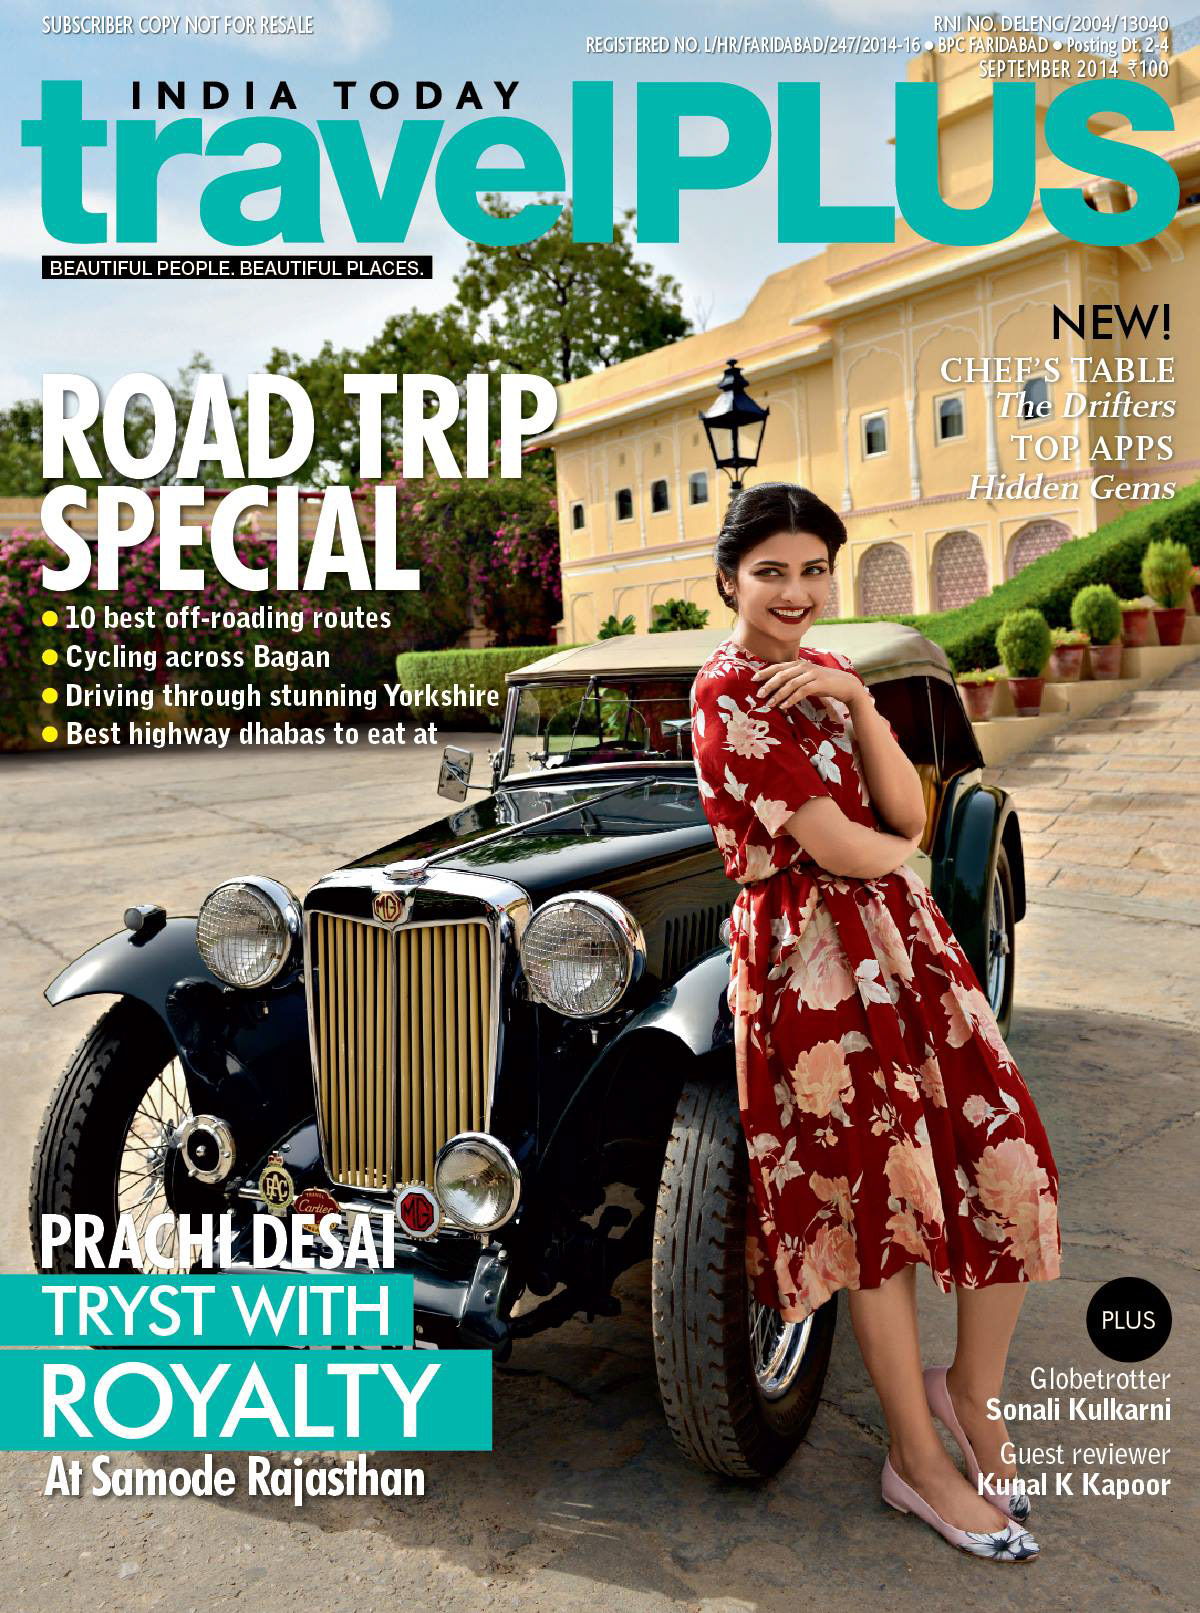 bharat aggarwal - India Today Travel Plus